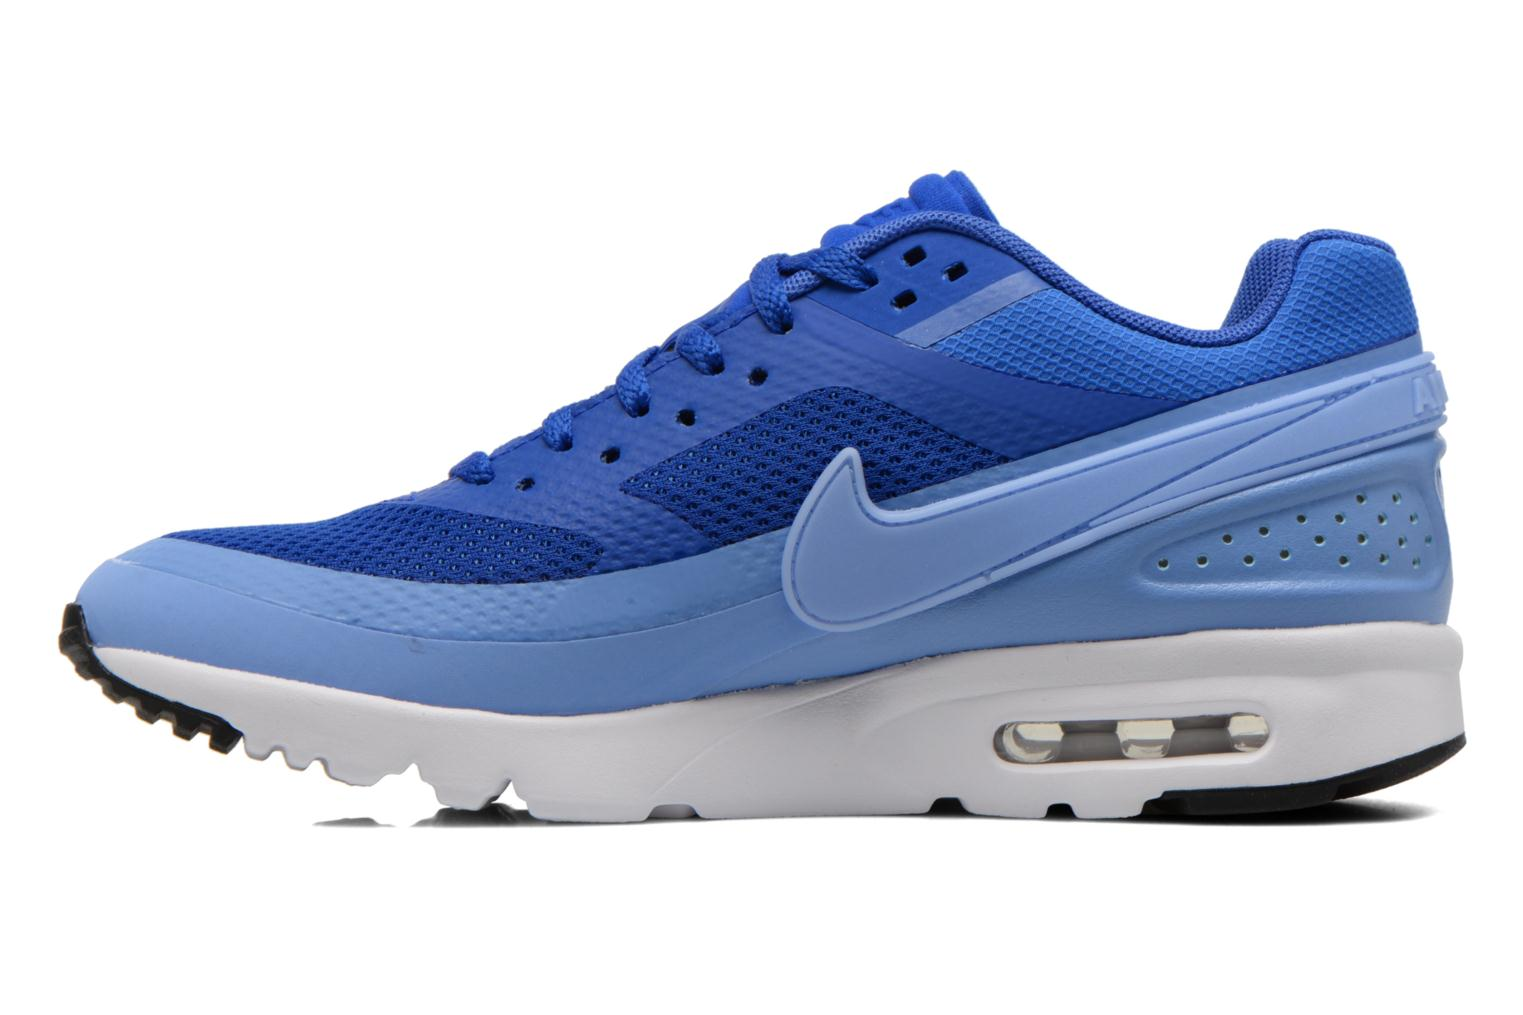 W Air Max Bw Ultra Racer Blue/Chlk Blue-White-Blk